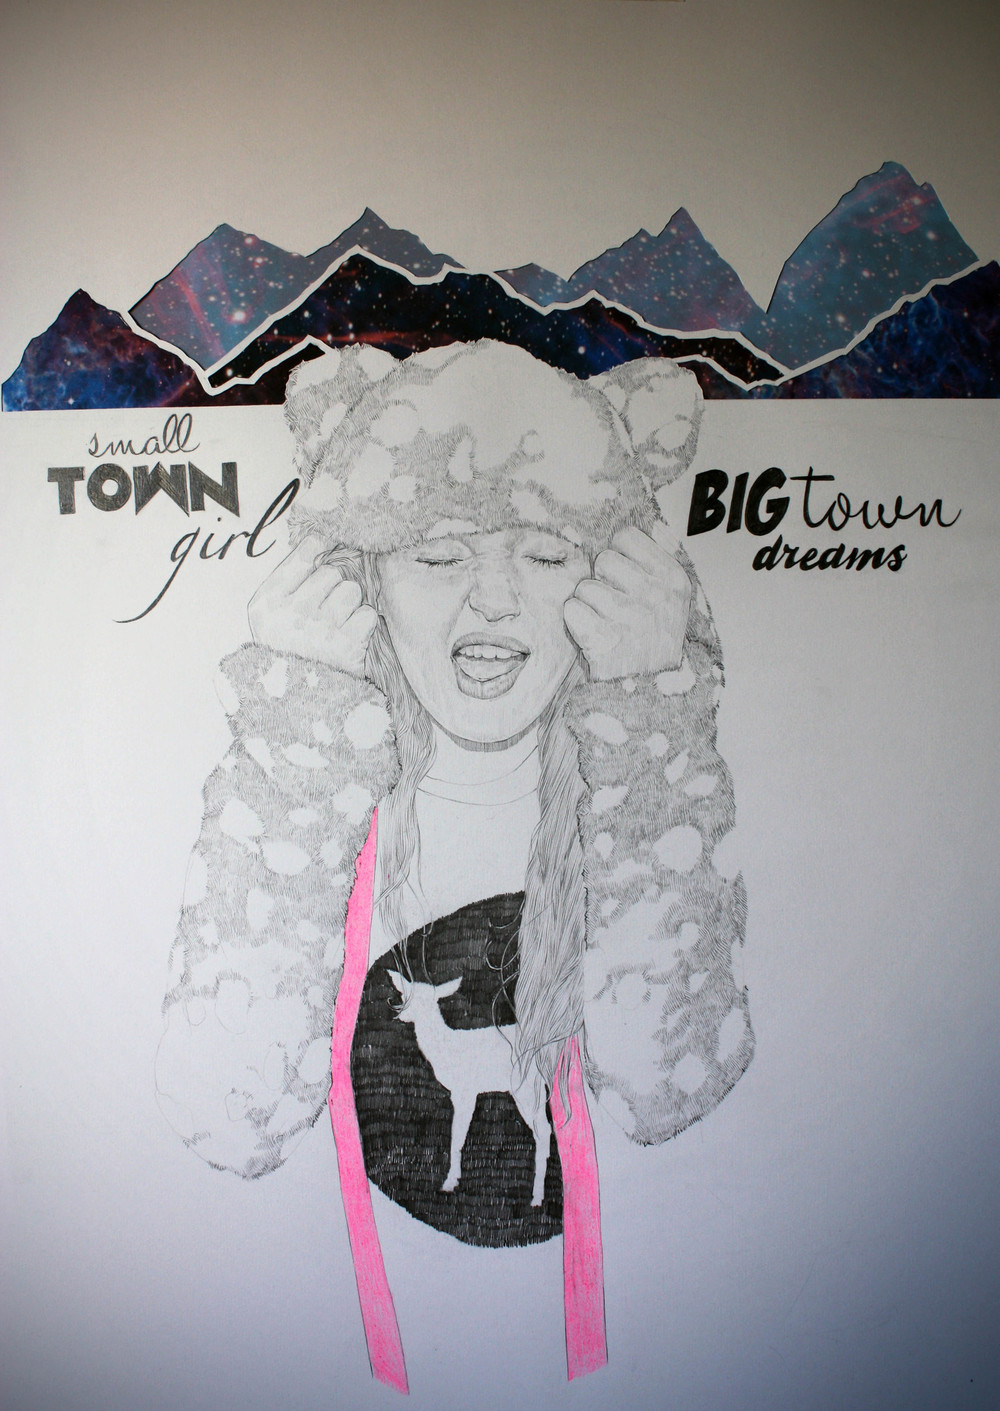 SMALL+TOWN+GIRL+BIG+TOWN+DREAMS.jpg